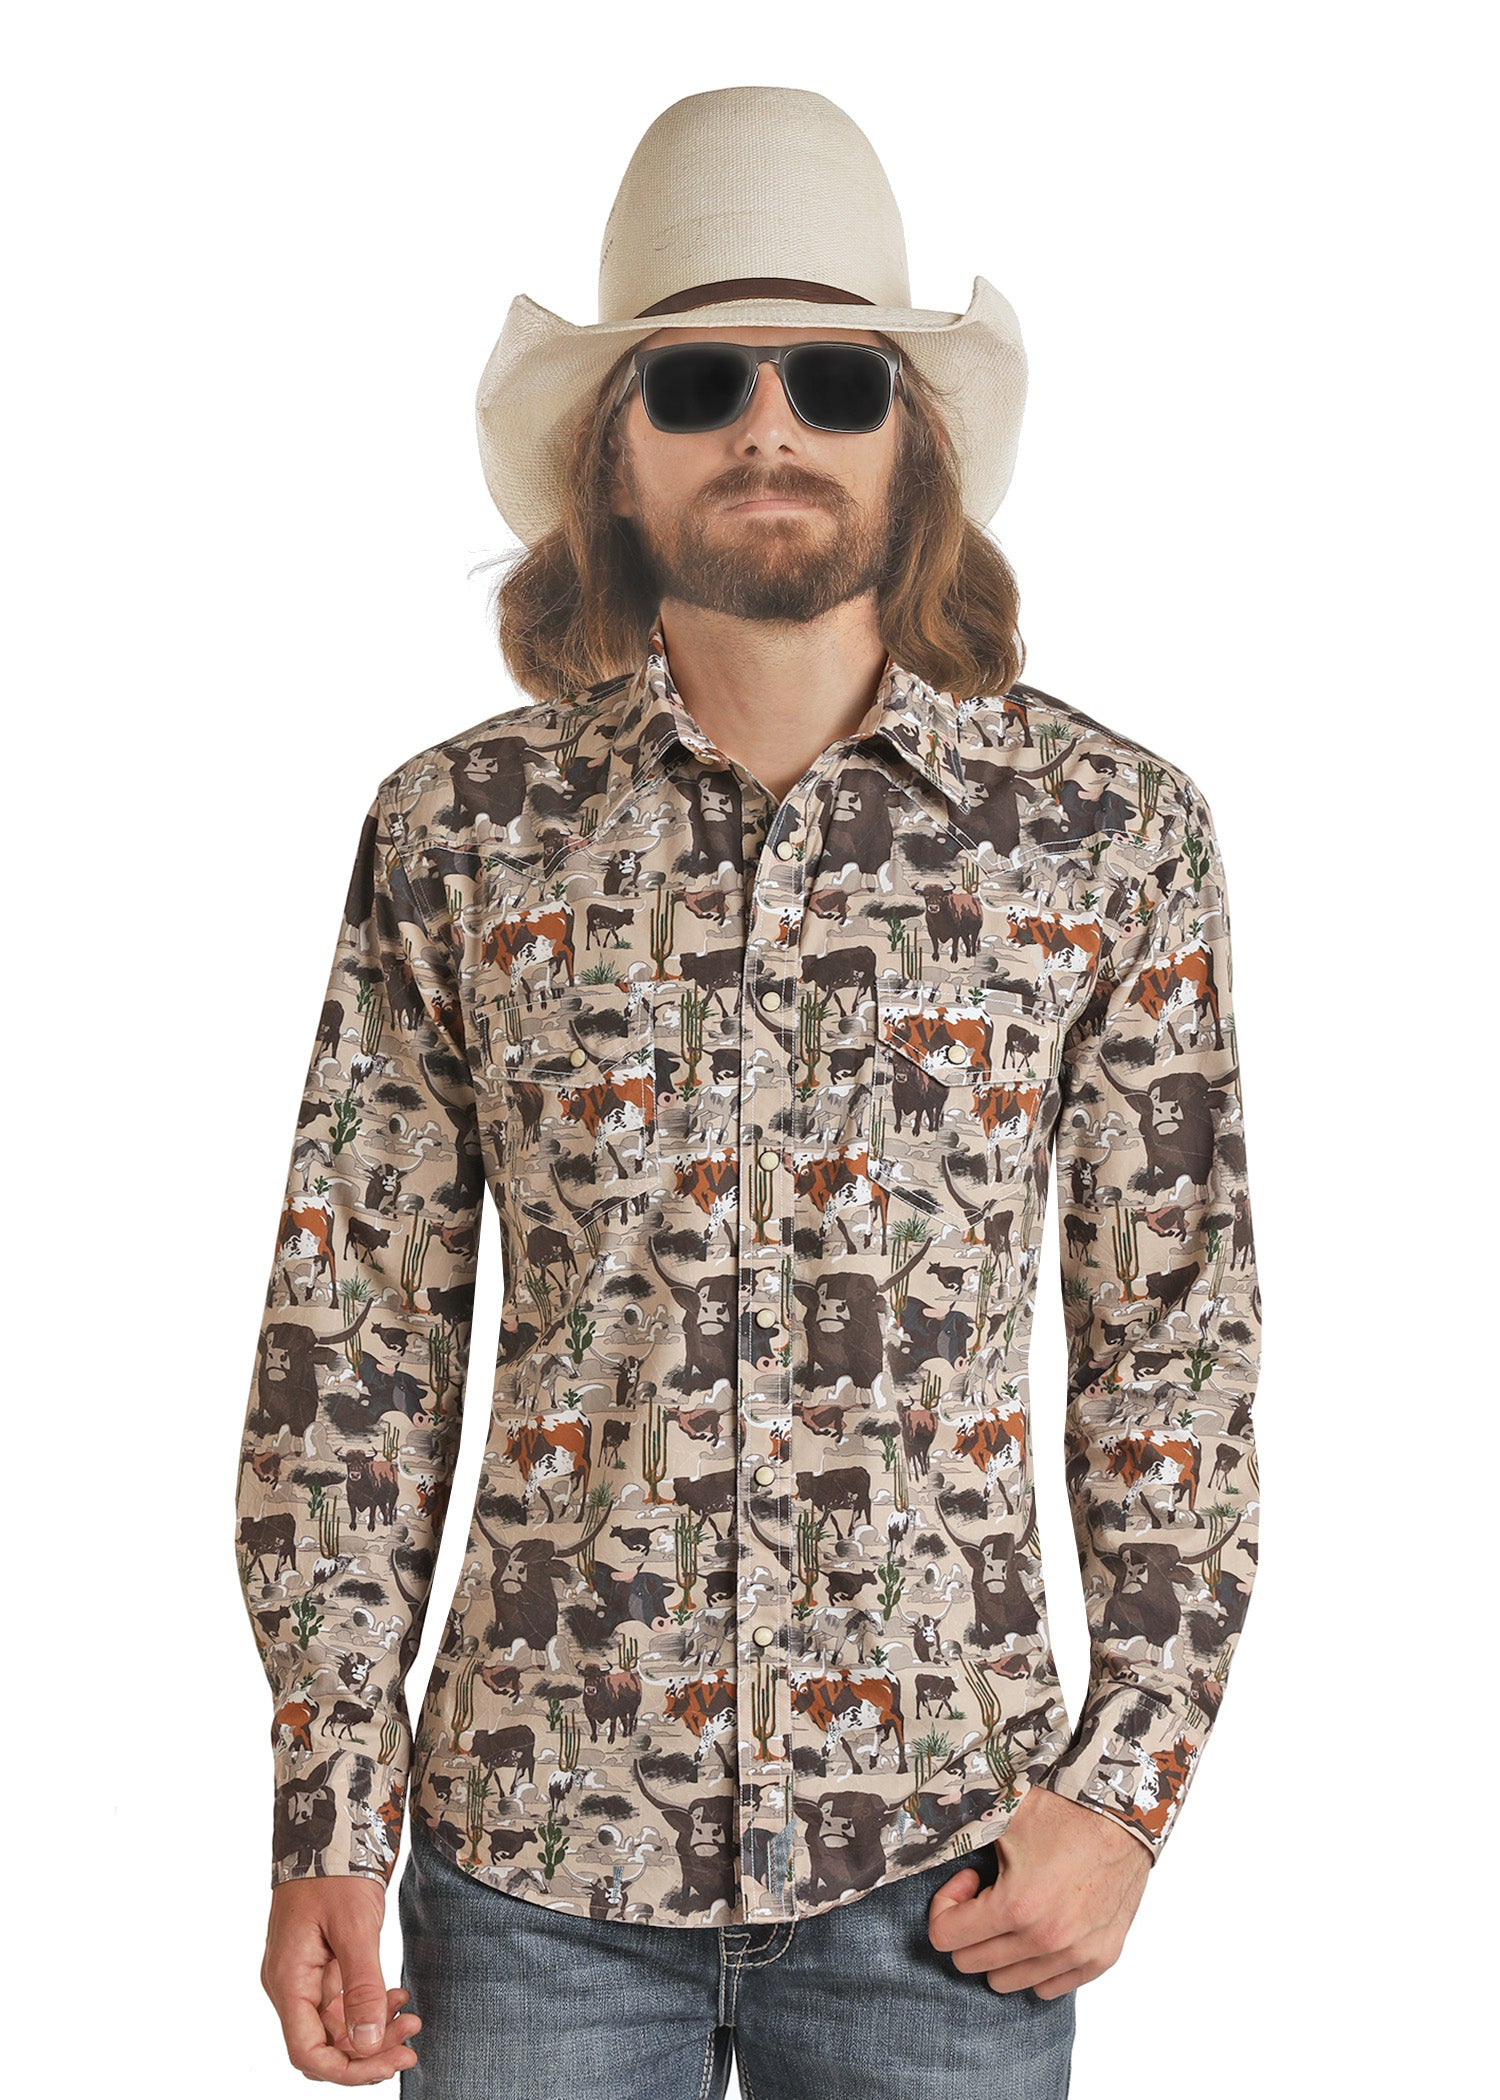 Panhandle Men's Long Sleeve Pearl Snap Shirt